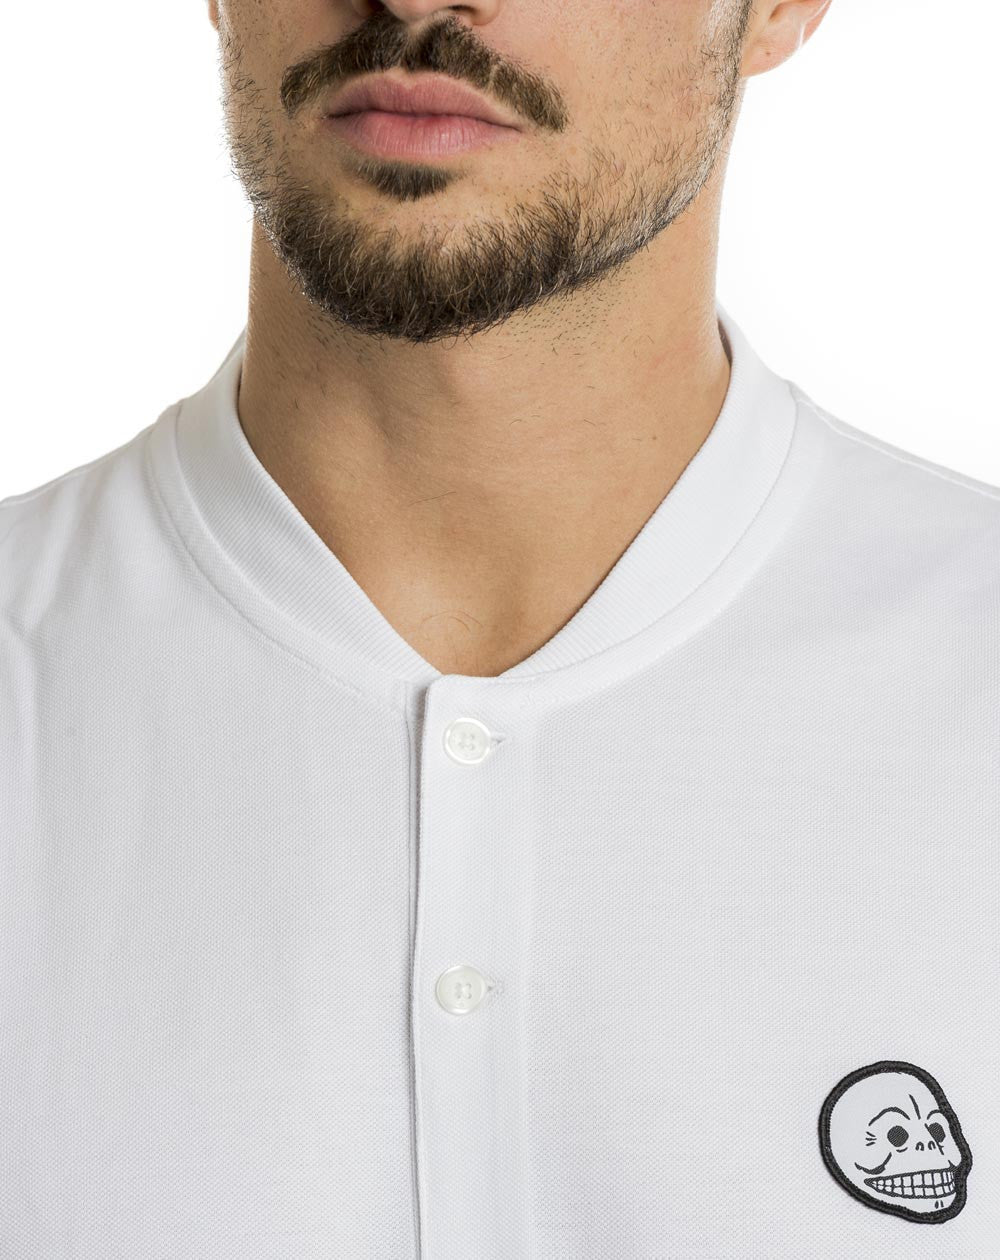 WHITE TRADITION POLO